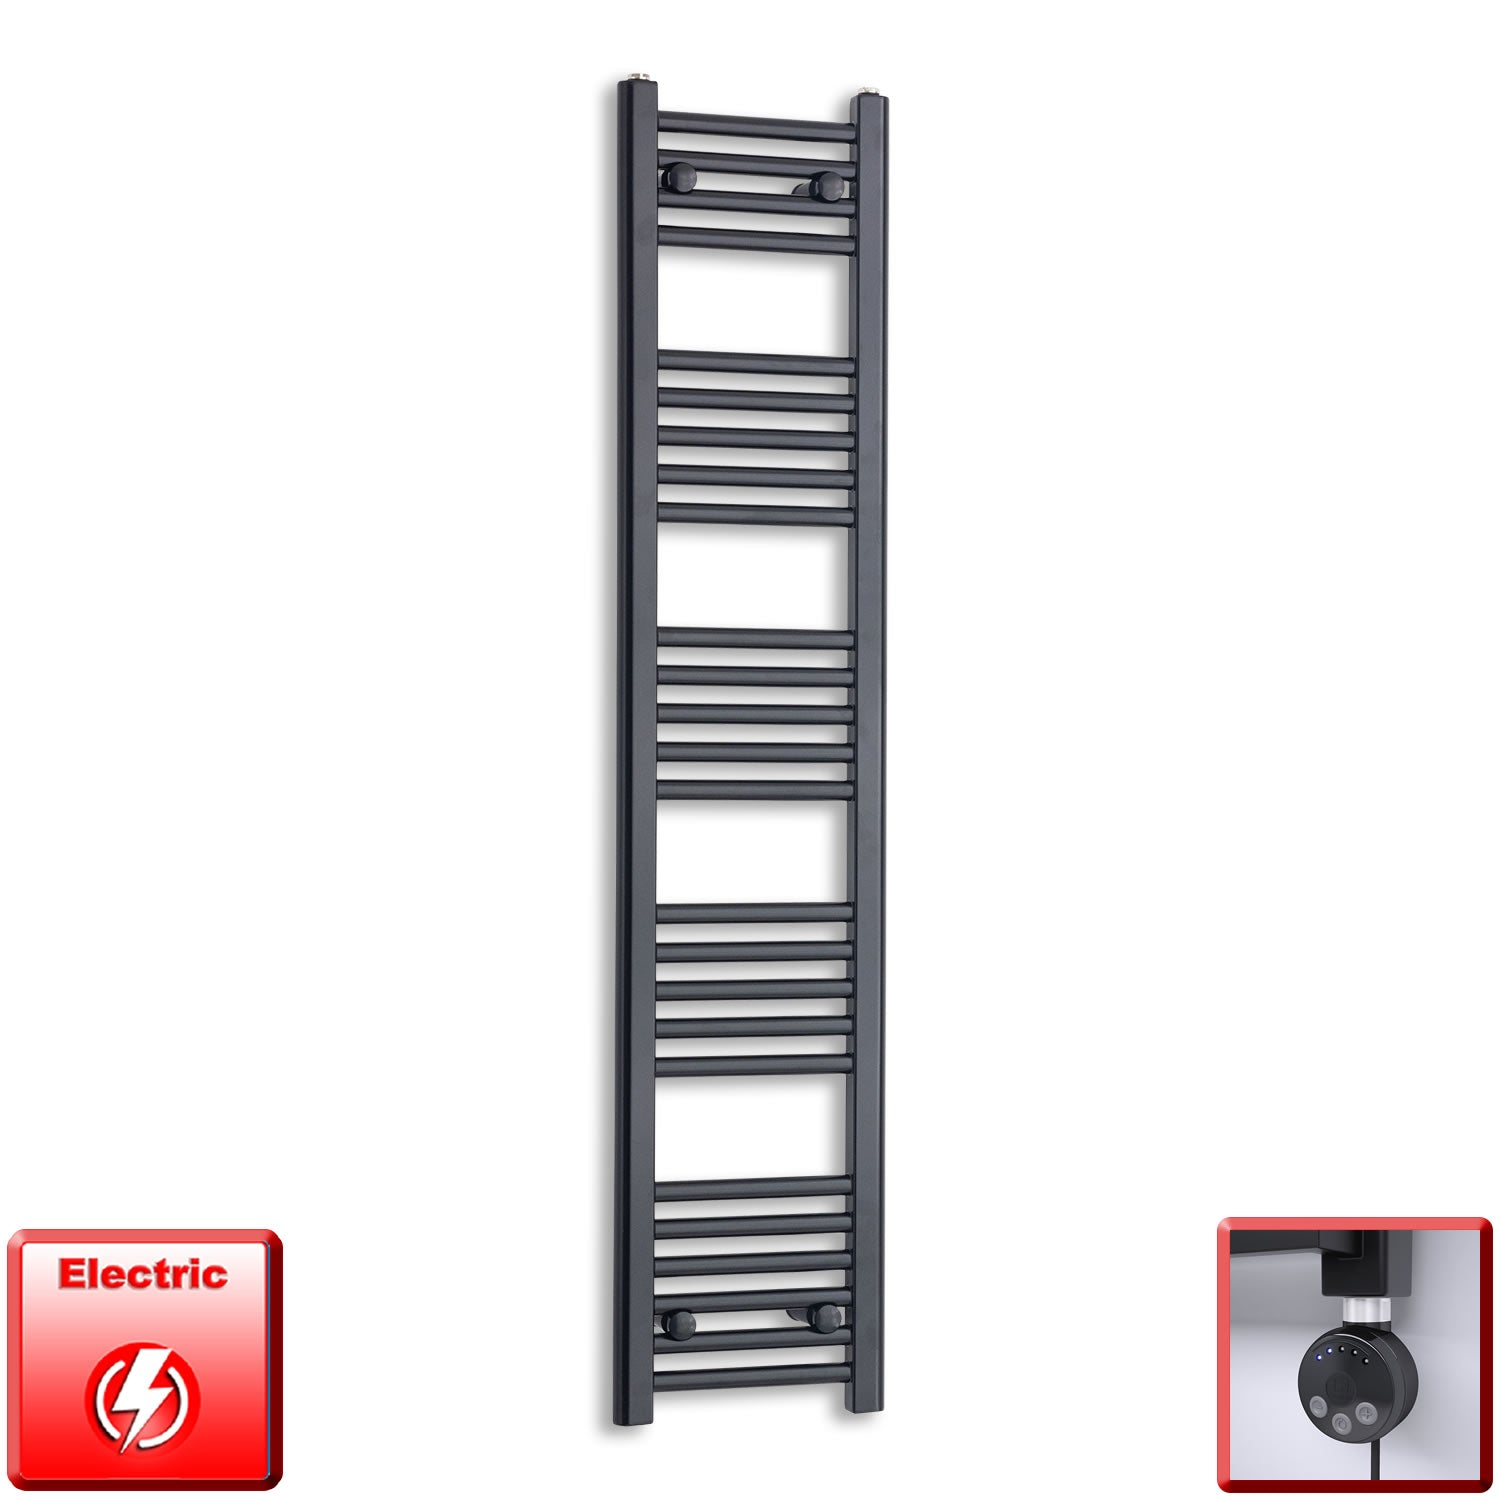 300mm Wide 1400mm High Pre-Filled Black Electric Towel Rail Radiator With Thermostatic MEG Element